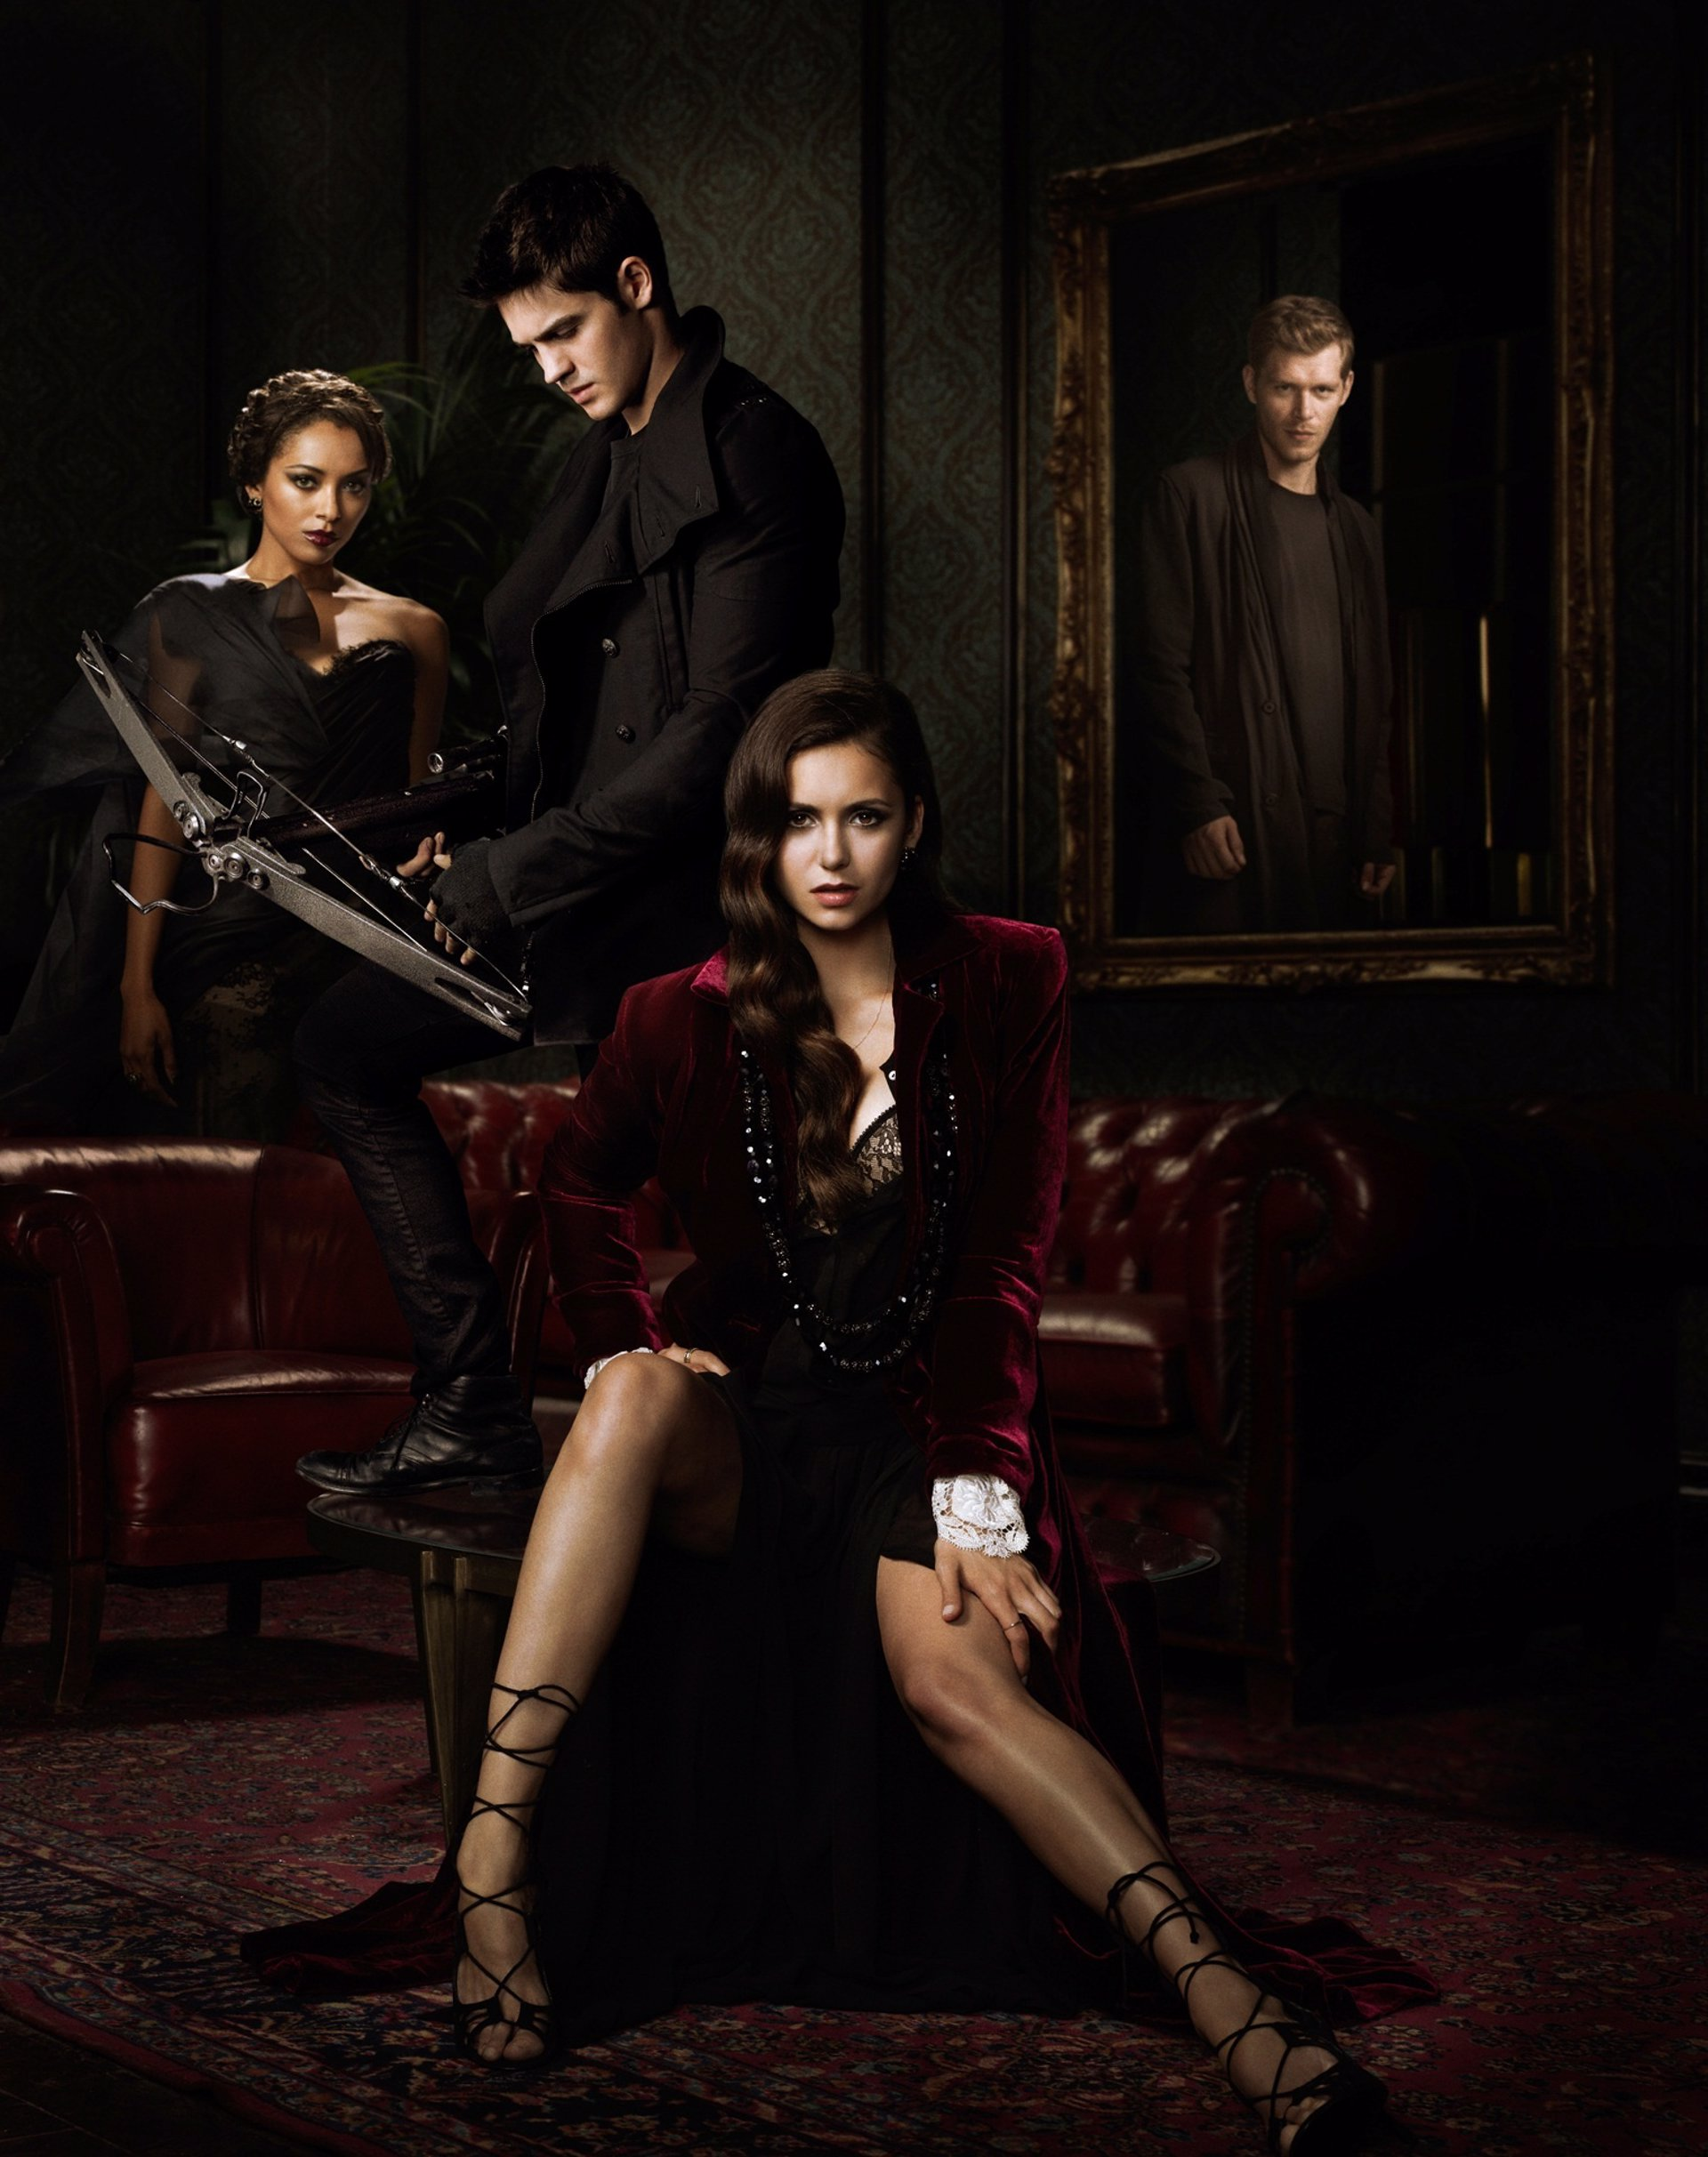 la quinta temporada de the vampire diaries tendr225 que